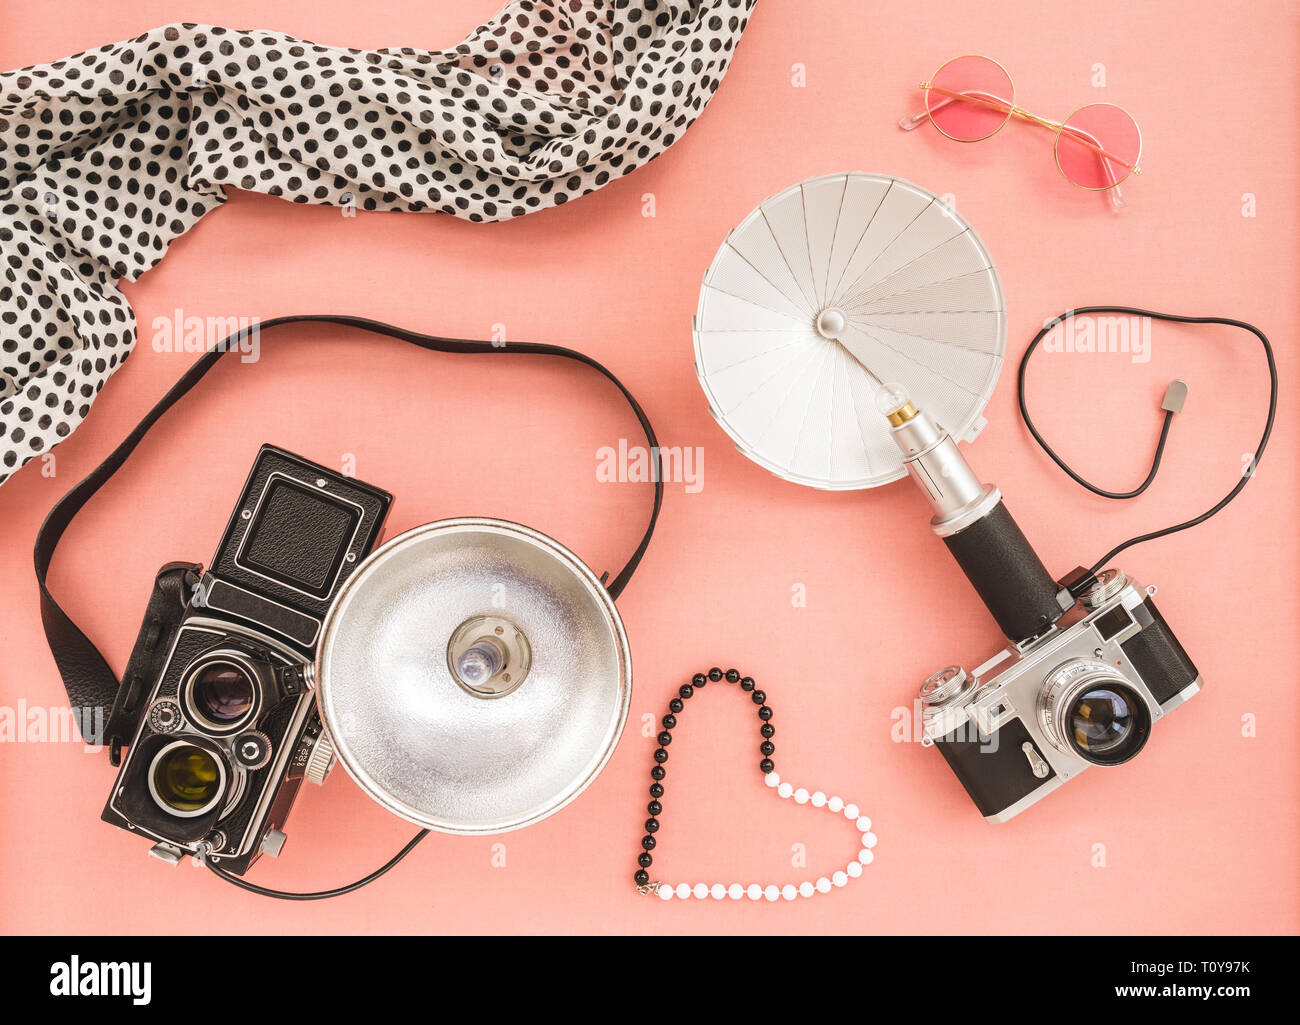 Vintage photo cameras with flashes, on pink canvas background. Stock Photo